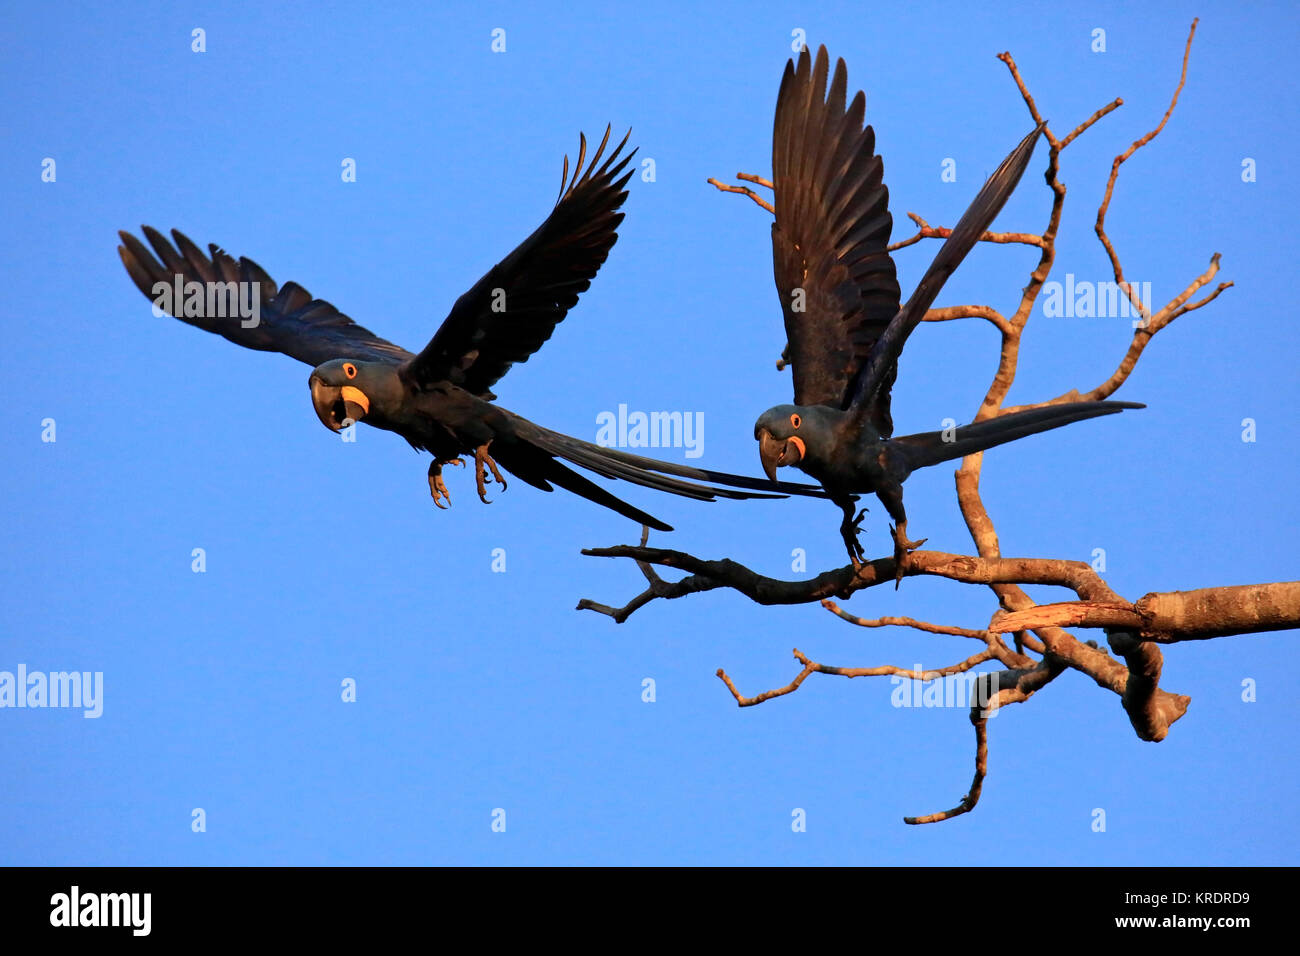 Two Hyacinth Macaws Taking Off from a Branch. Pantanal, Brazil - Stock Image